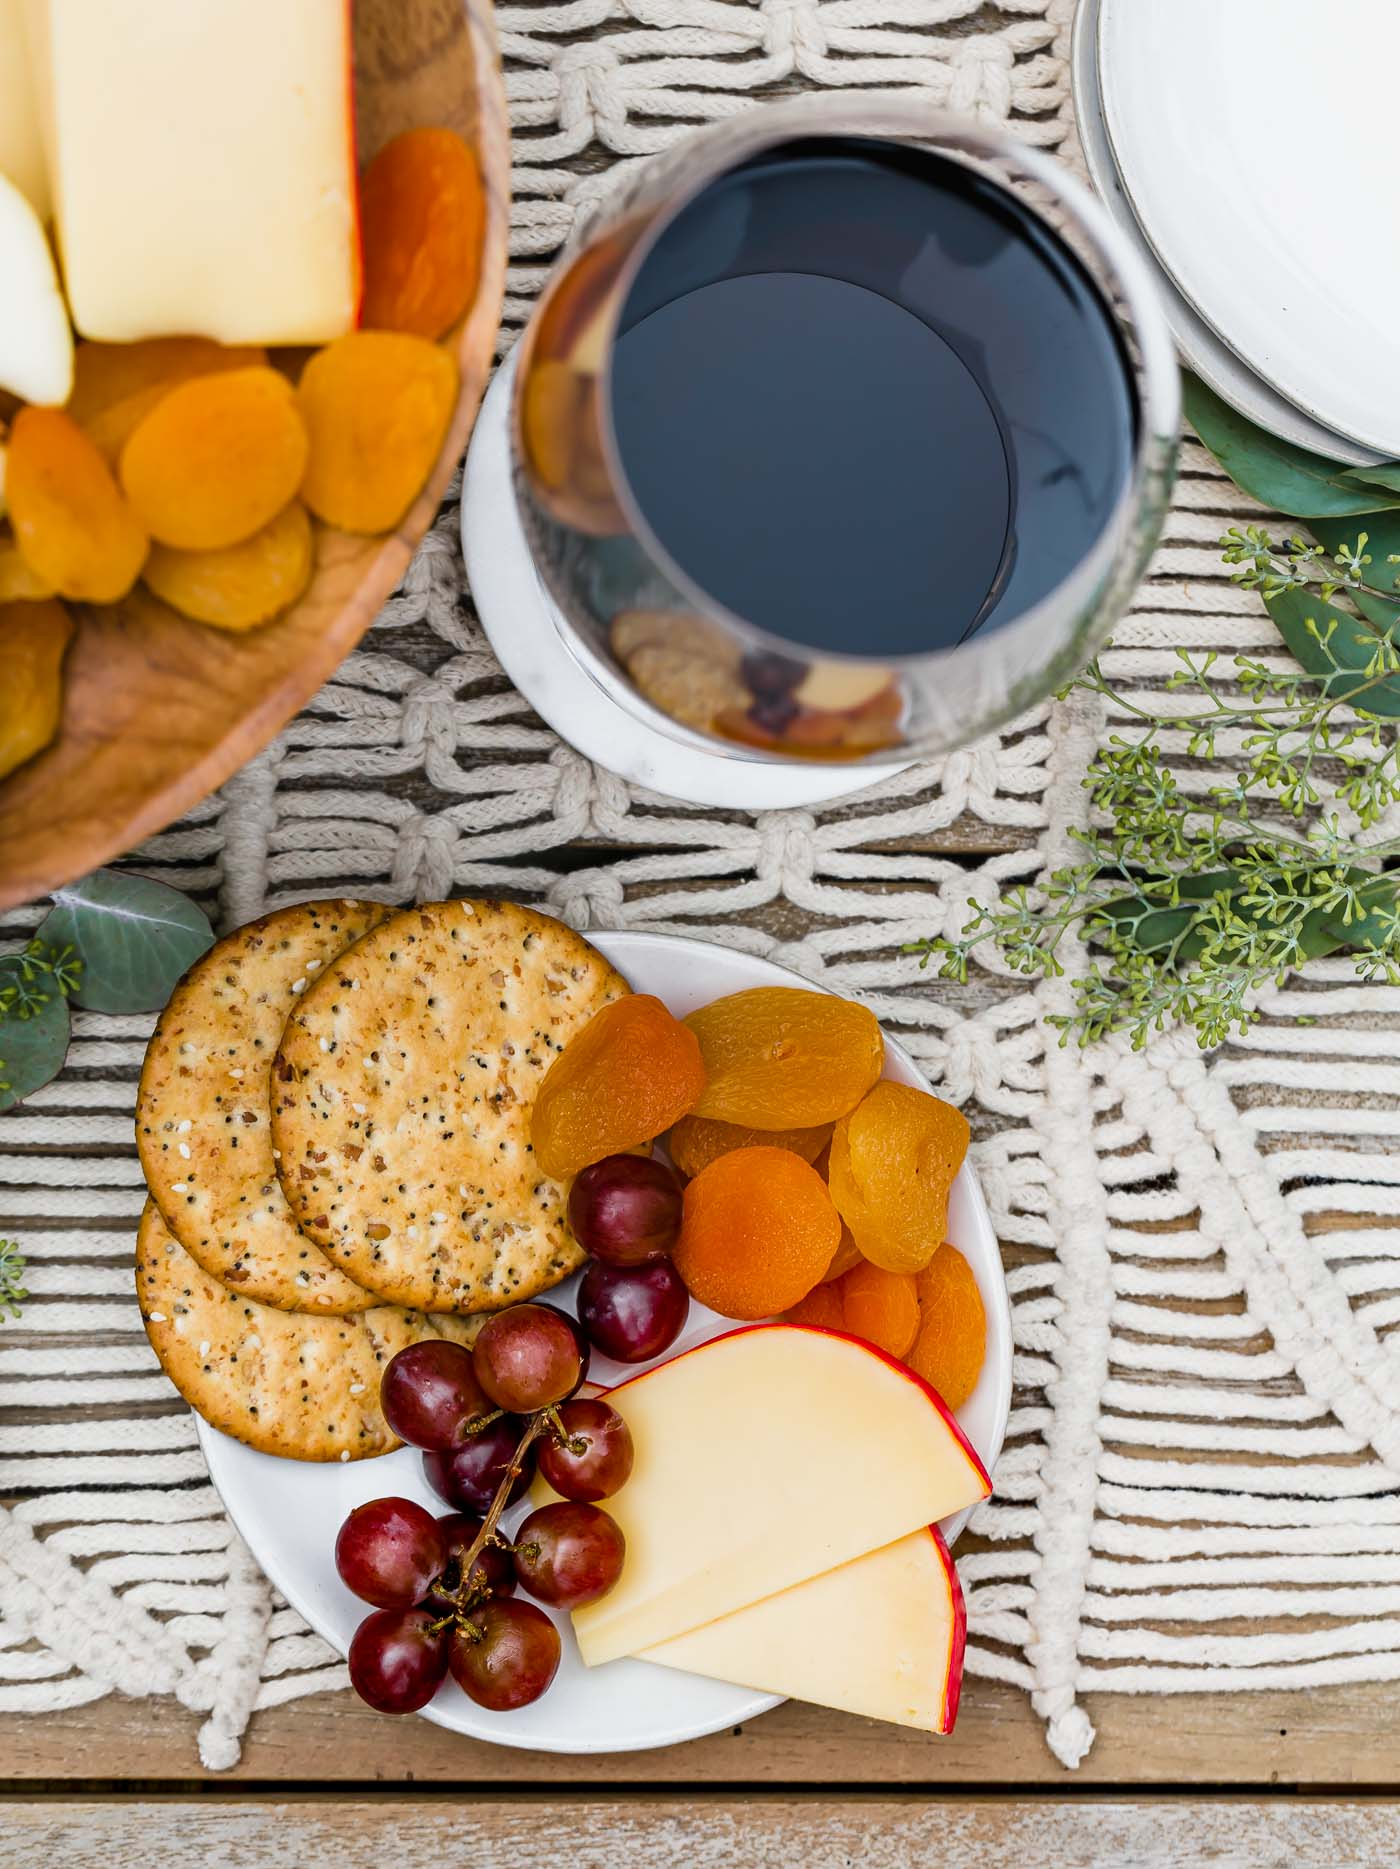 this dessert cheese board is filled with after-dinner cheeses, fresh berries & fall fruits, & includes the perfect wine pairings! the best snacks & appetizers to serve for the ultimate girls night or dinner party this fall. #playswellwithbutter #cheeseboard #dessertcheeseboardideas #cheeseboardideas #girlsnightideas #girlsnightsnacks #girlsnightappetizers #cheeseboardforfall #cheeseboarddisplay #howtomakeacheeseboard